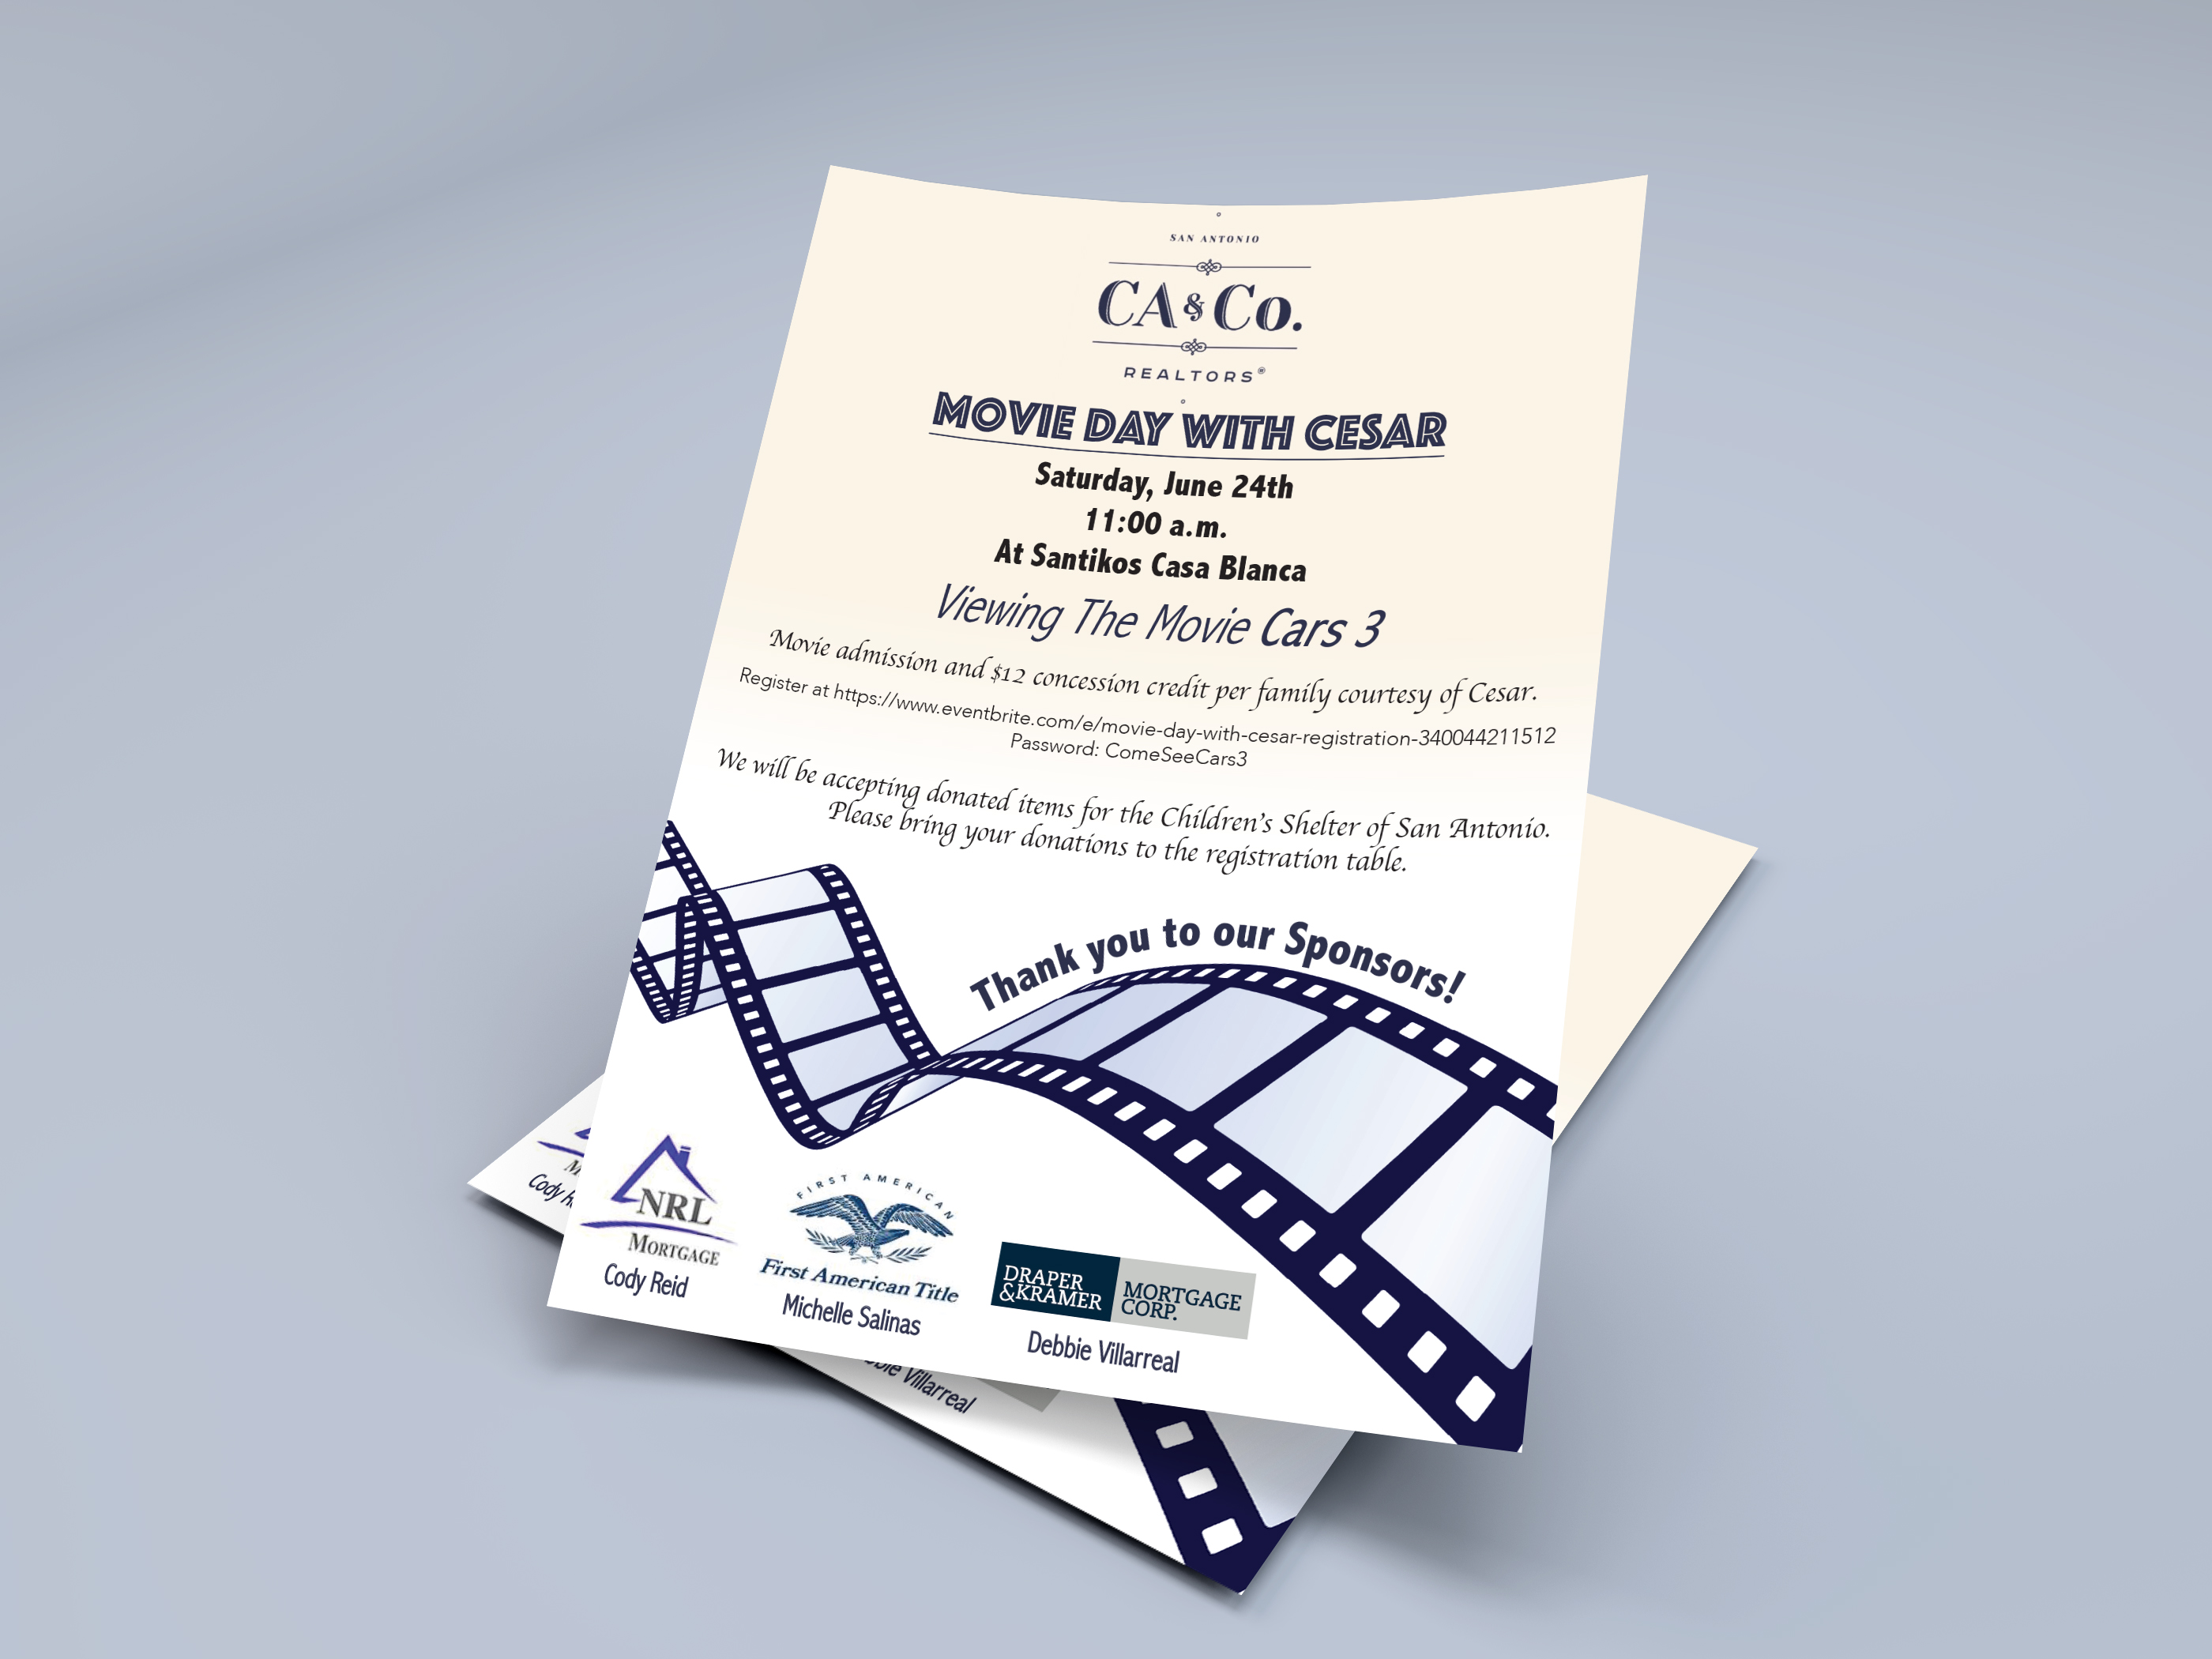 CA&Co. Movie Night Event Flyer